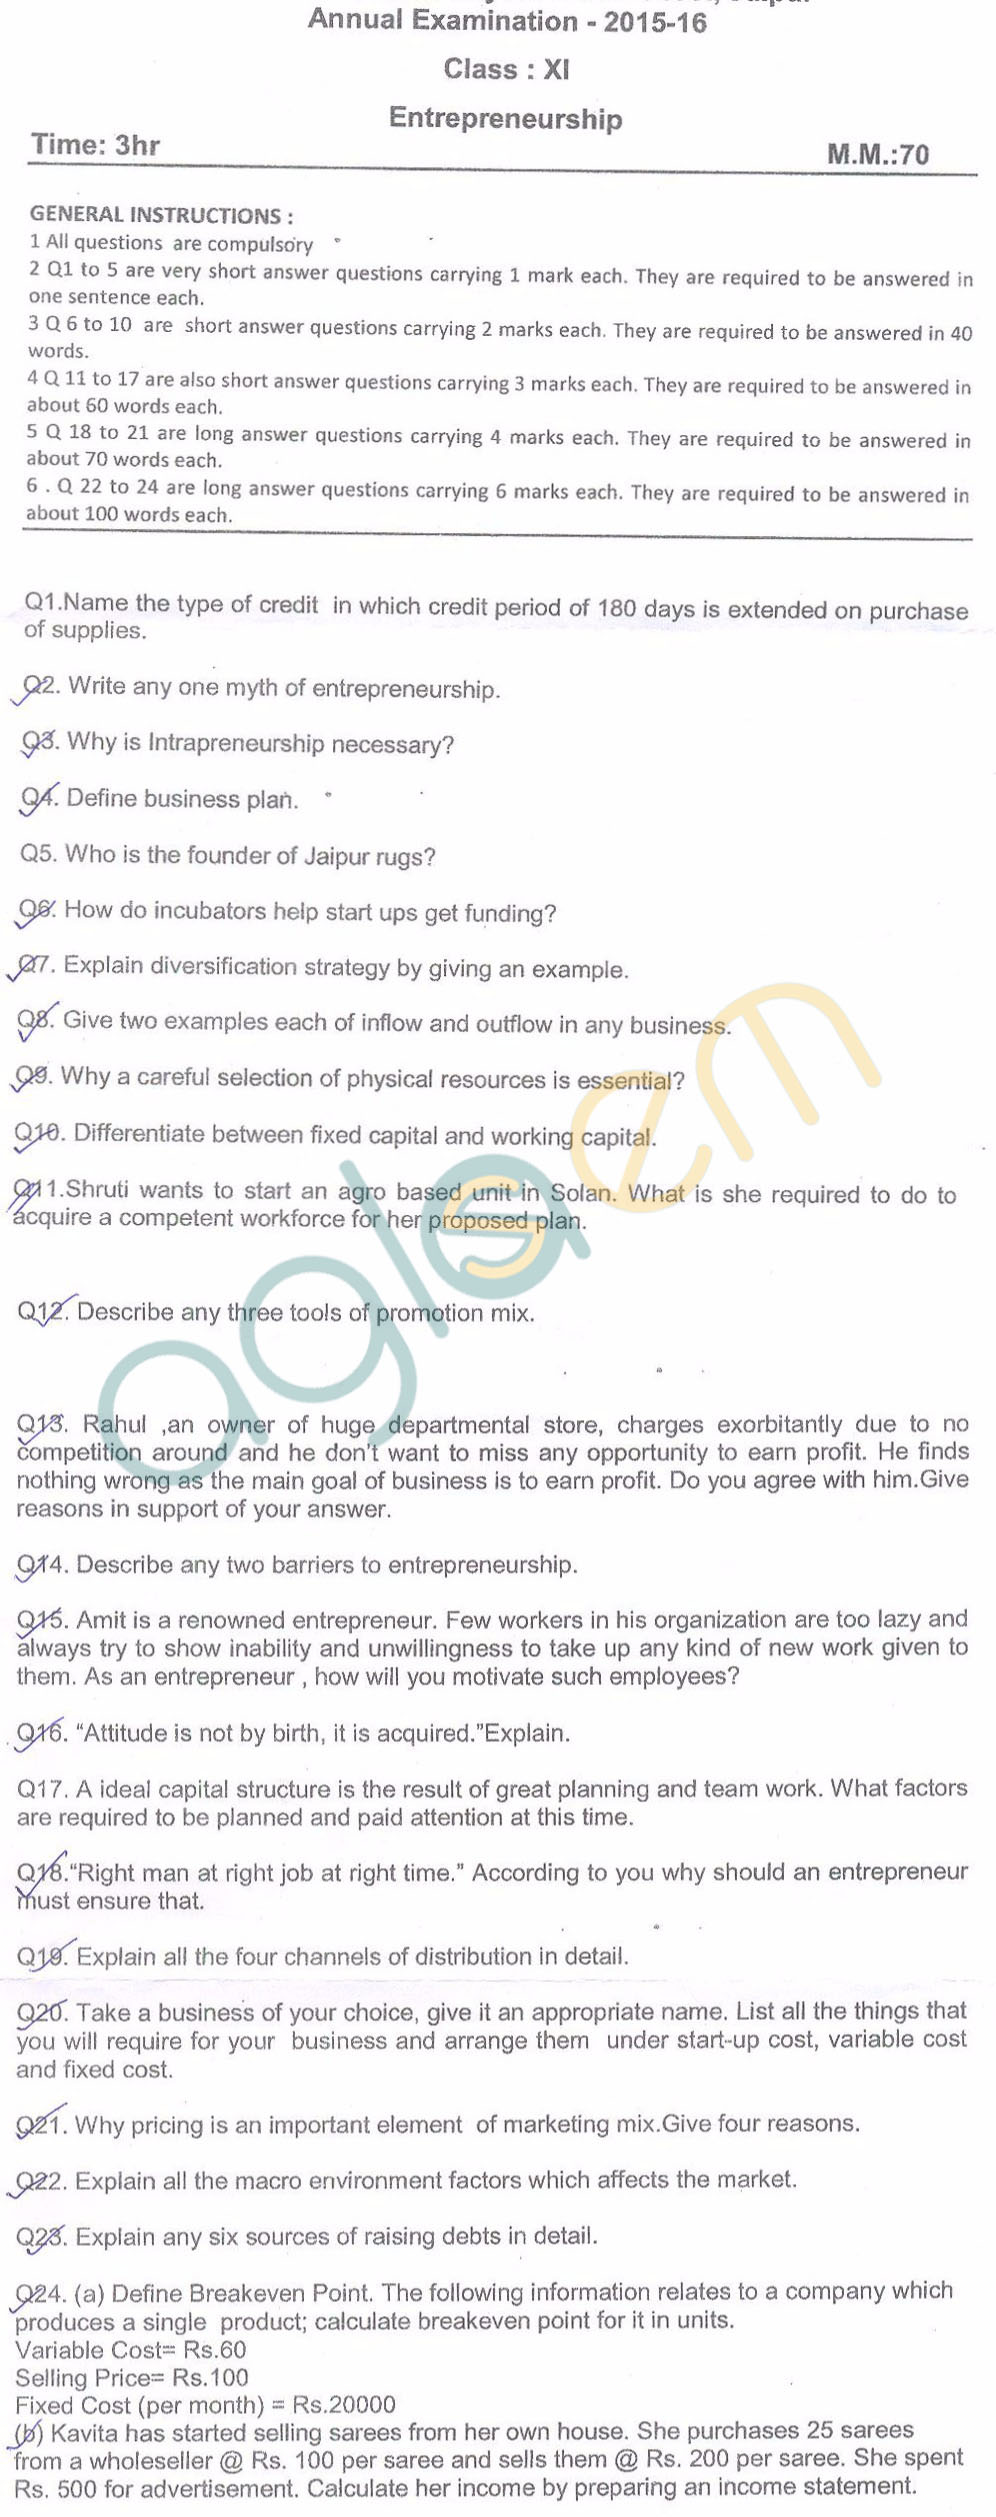 CBSE Class 11 Annual Exam Question Papers – Entrepreneurship